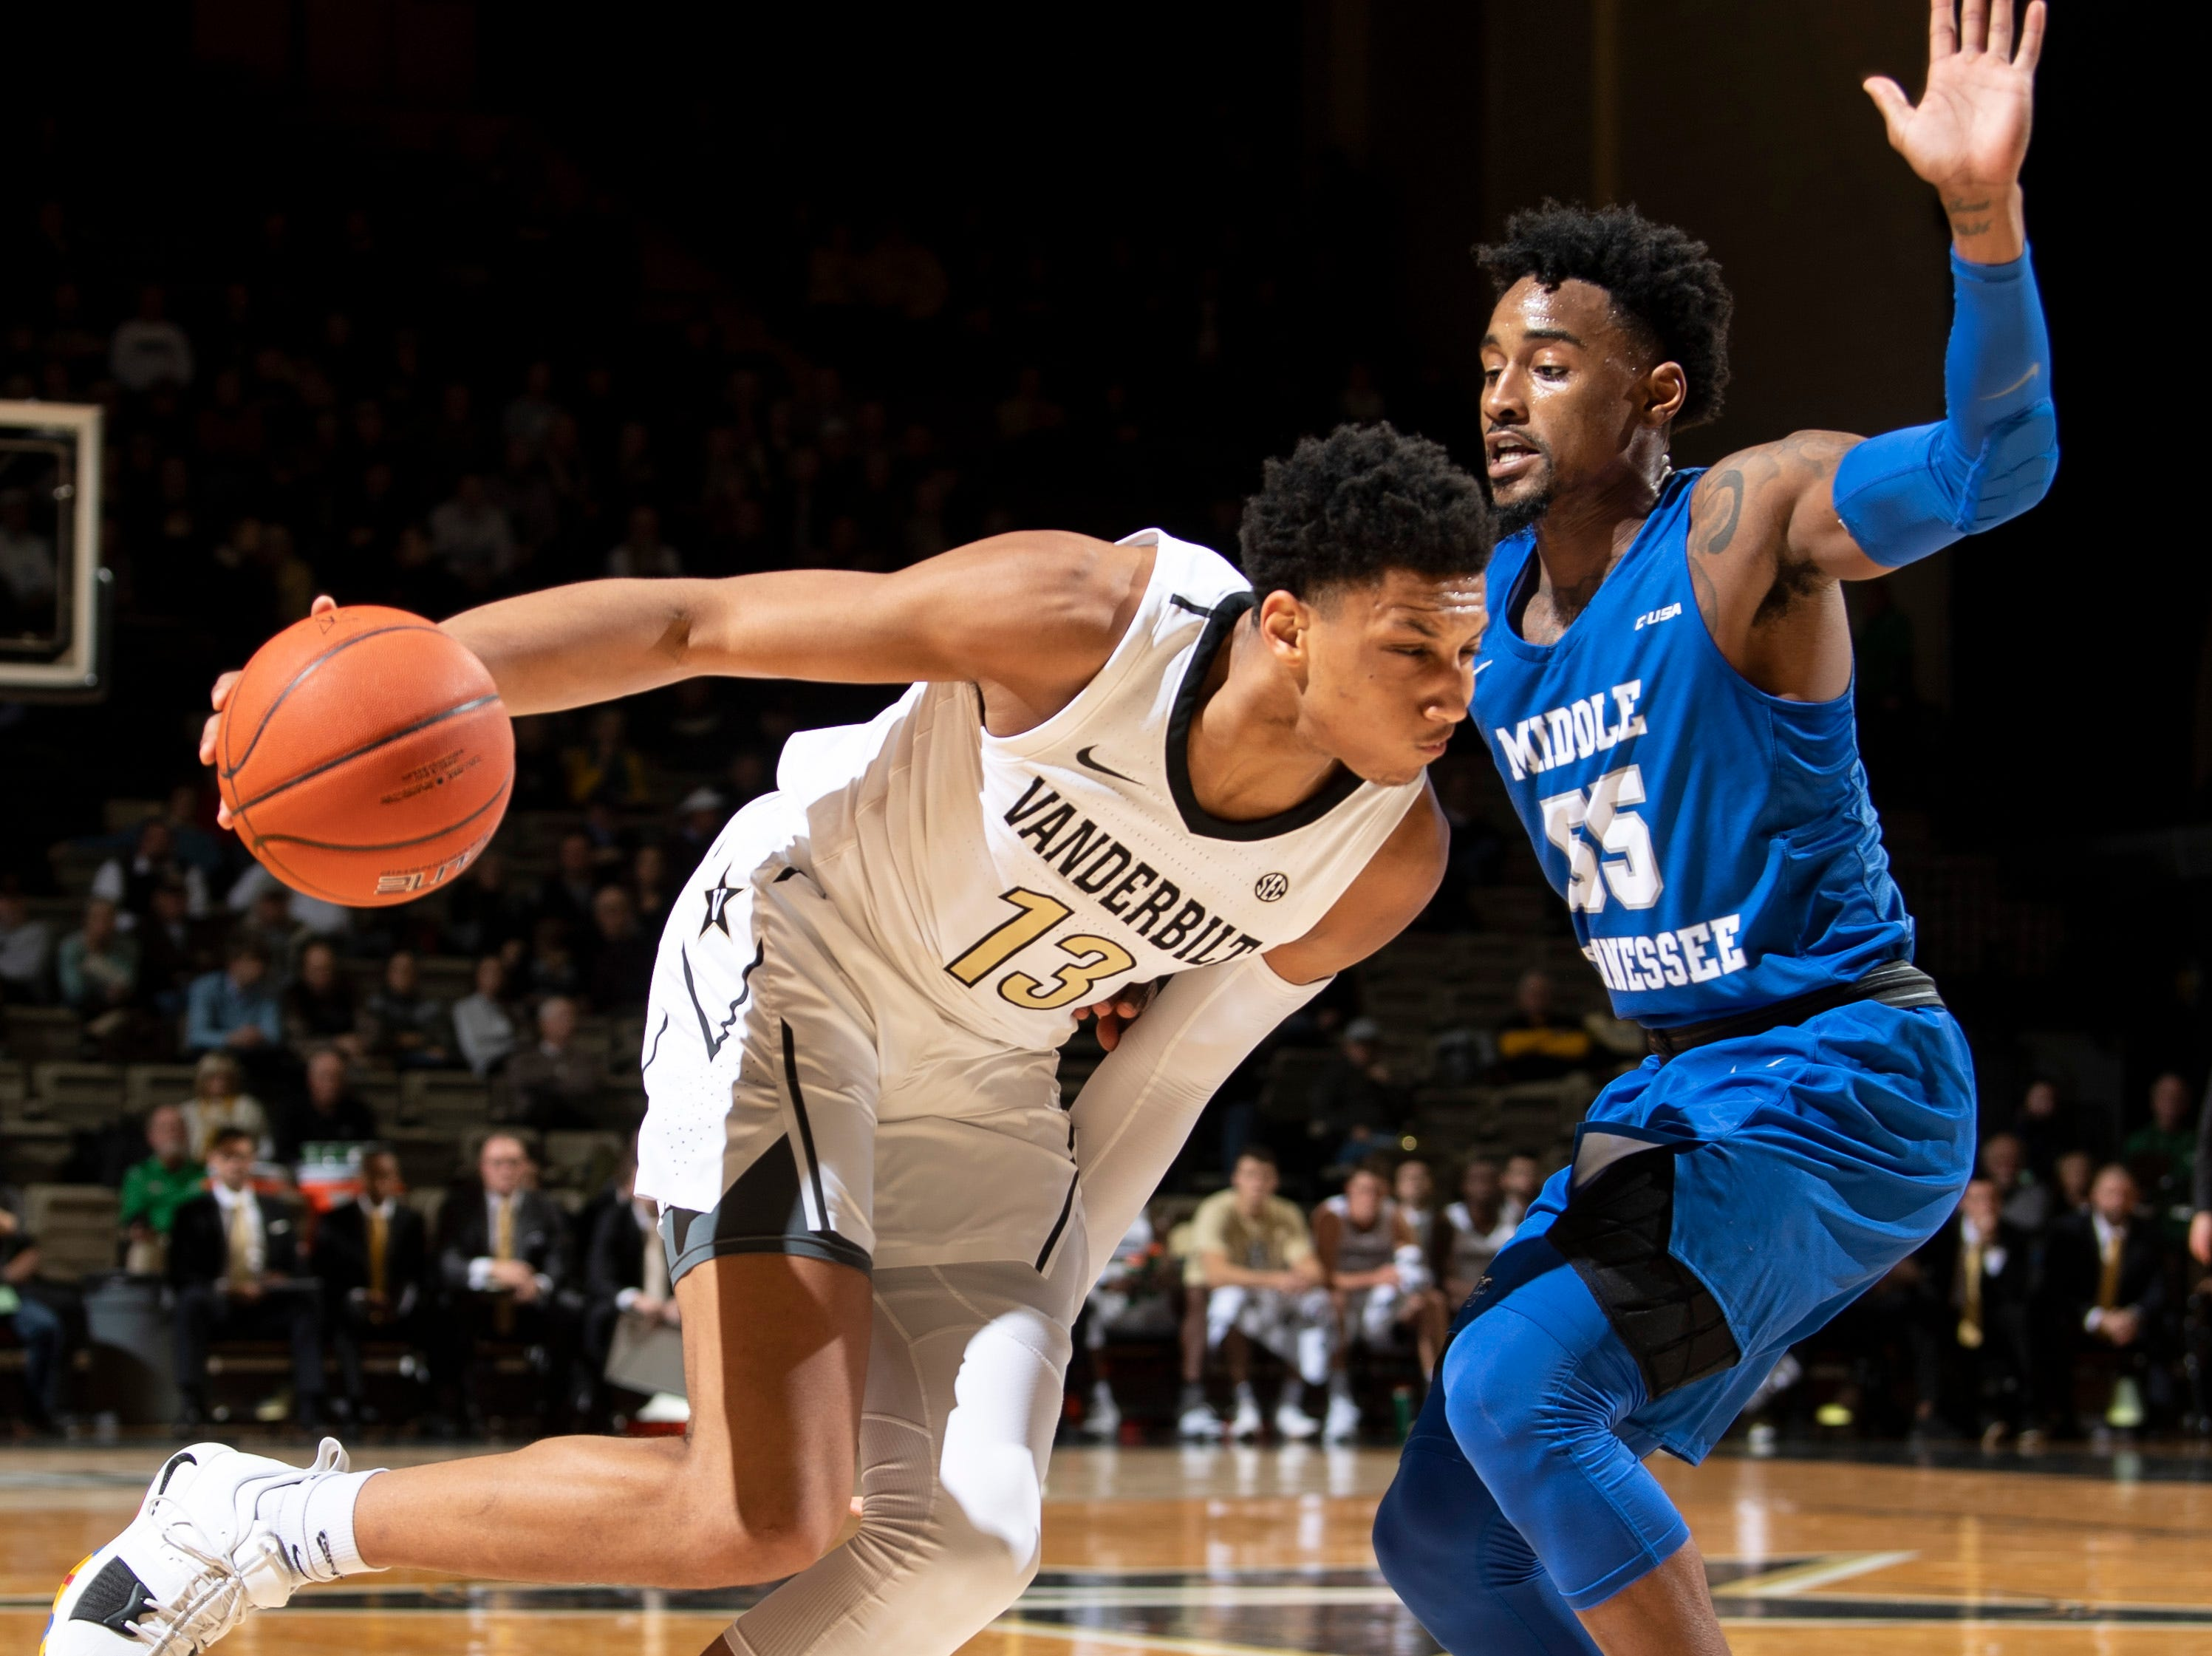 Vanderbilt forward Matthew Moyer (13) advances into MTSU guard Antonio Green (55)during the first half at Memorial Gym in Nashville, Tenn., Wednesday, Dec. 5, 2018.